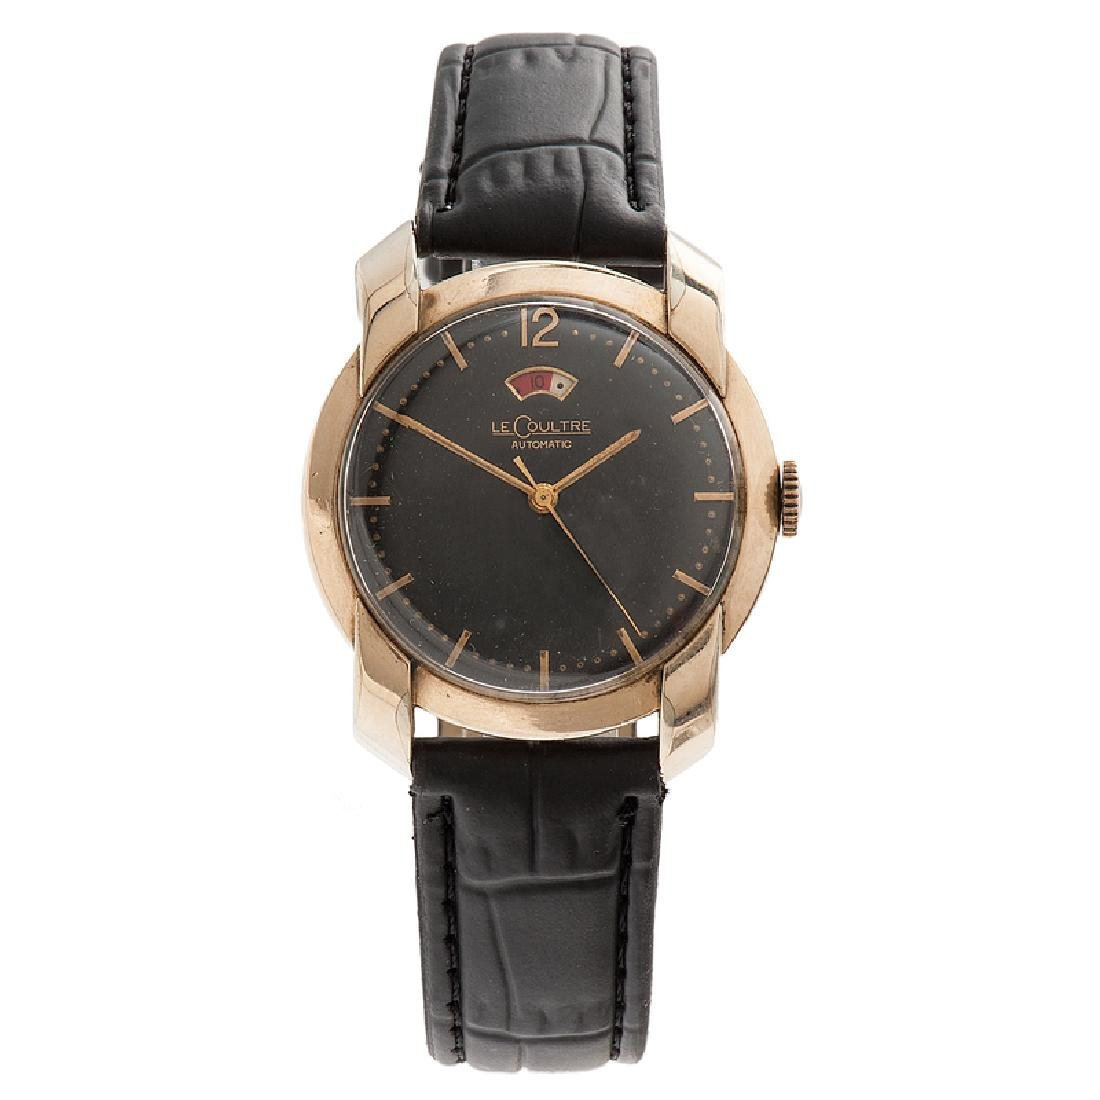 LeCoultre Automatic Power Reserve in 10 Karat Gold